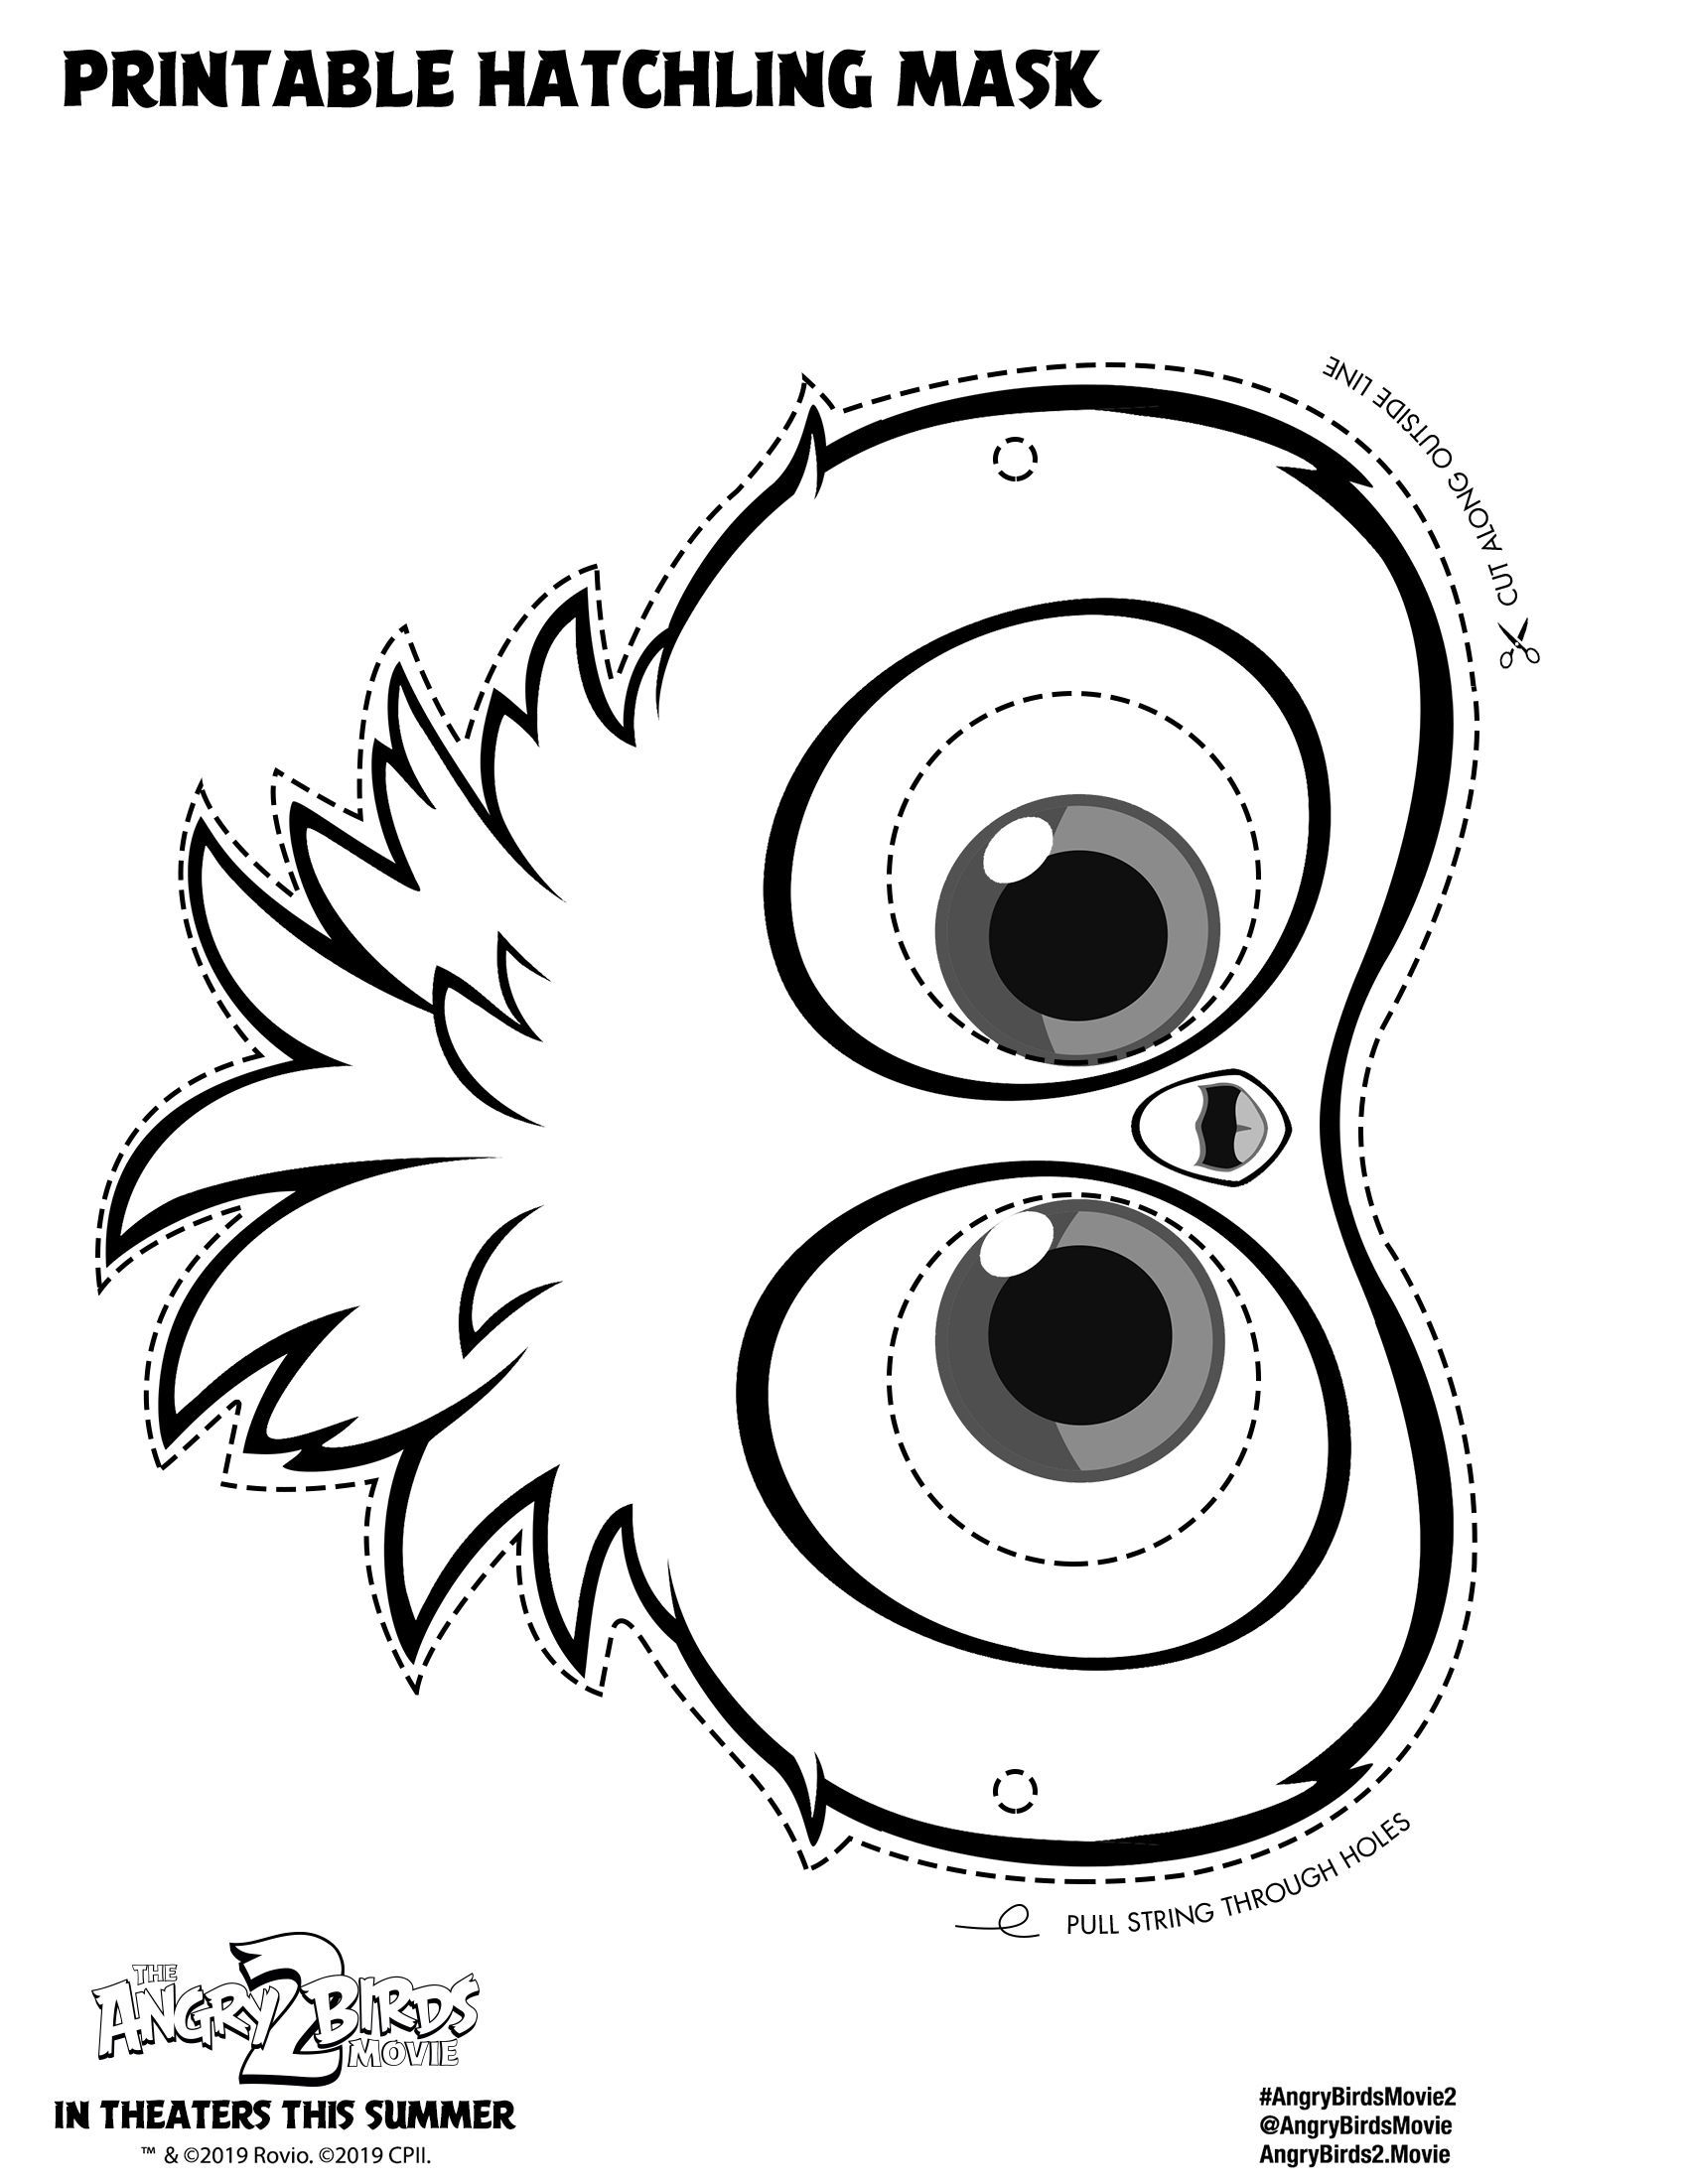 Angry Birds Movie Hatchling Mask Coloring Pages Cartoon Coloring Pages Angry Birds In 2021 Bird Coloring Pages Cartoon Coloring Pages Dinosaur Coloring Pages